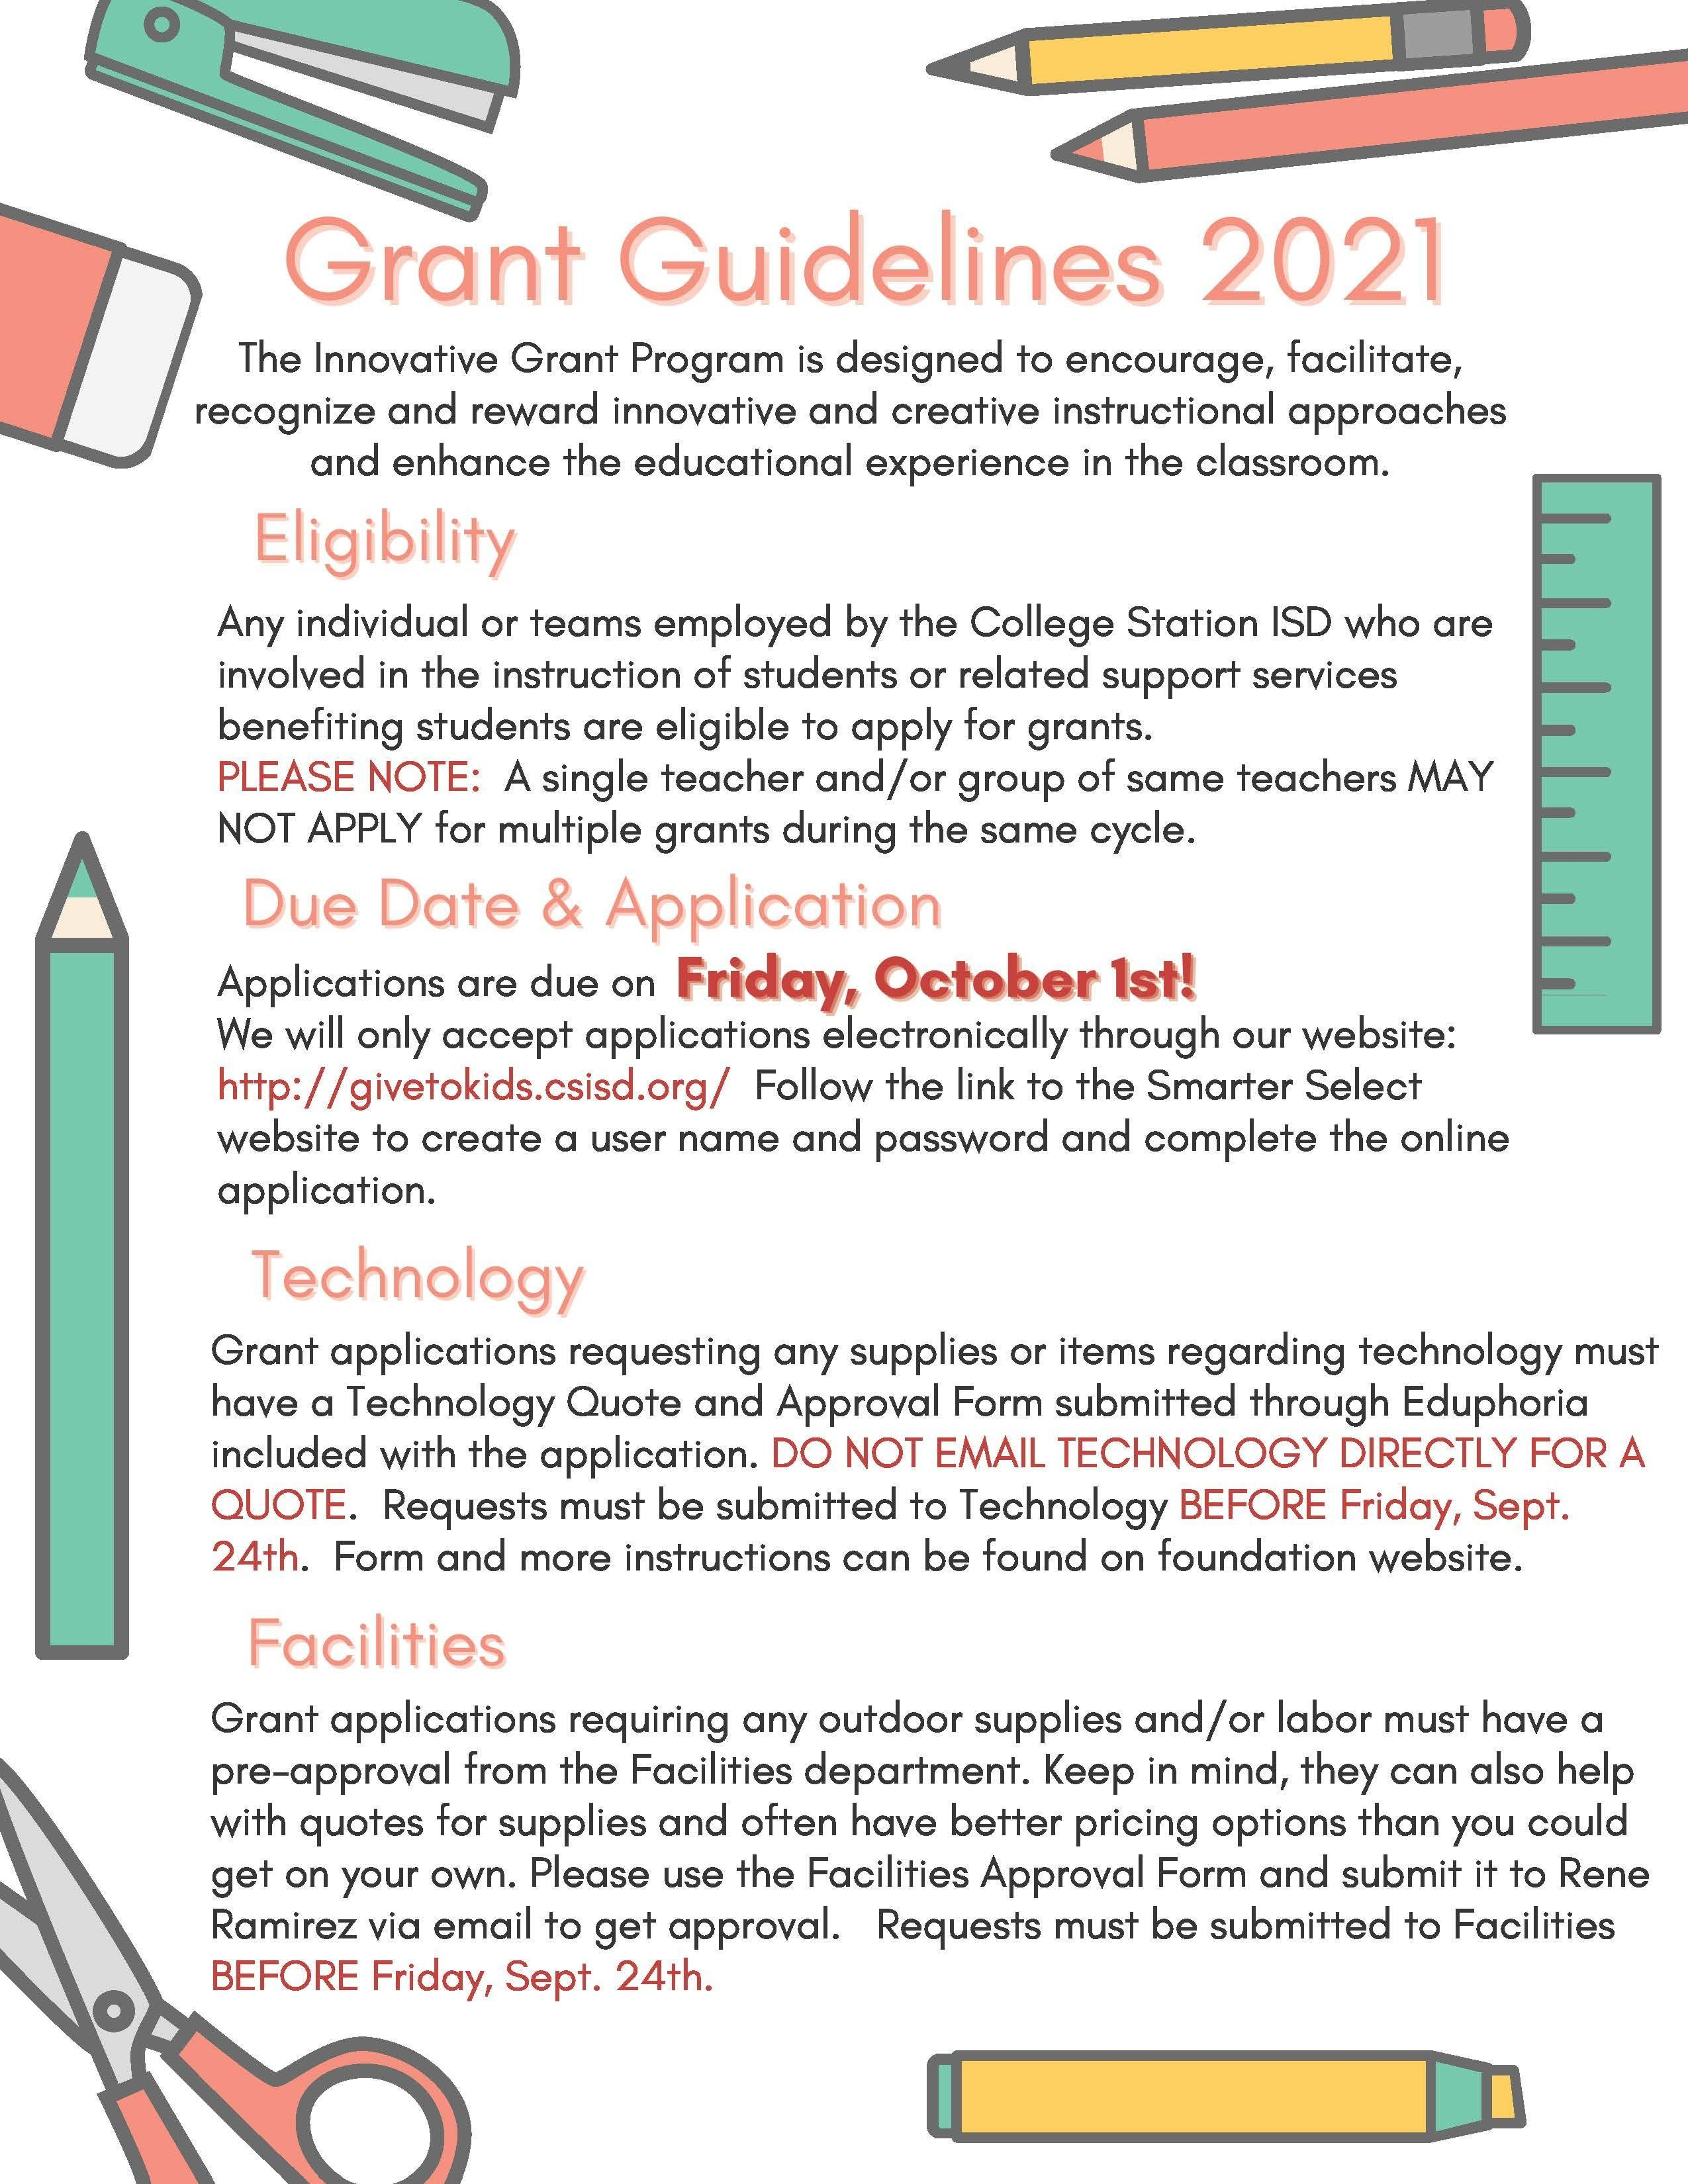 Grant Guidelines 2021